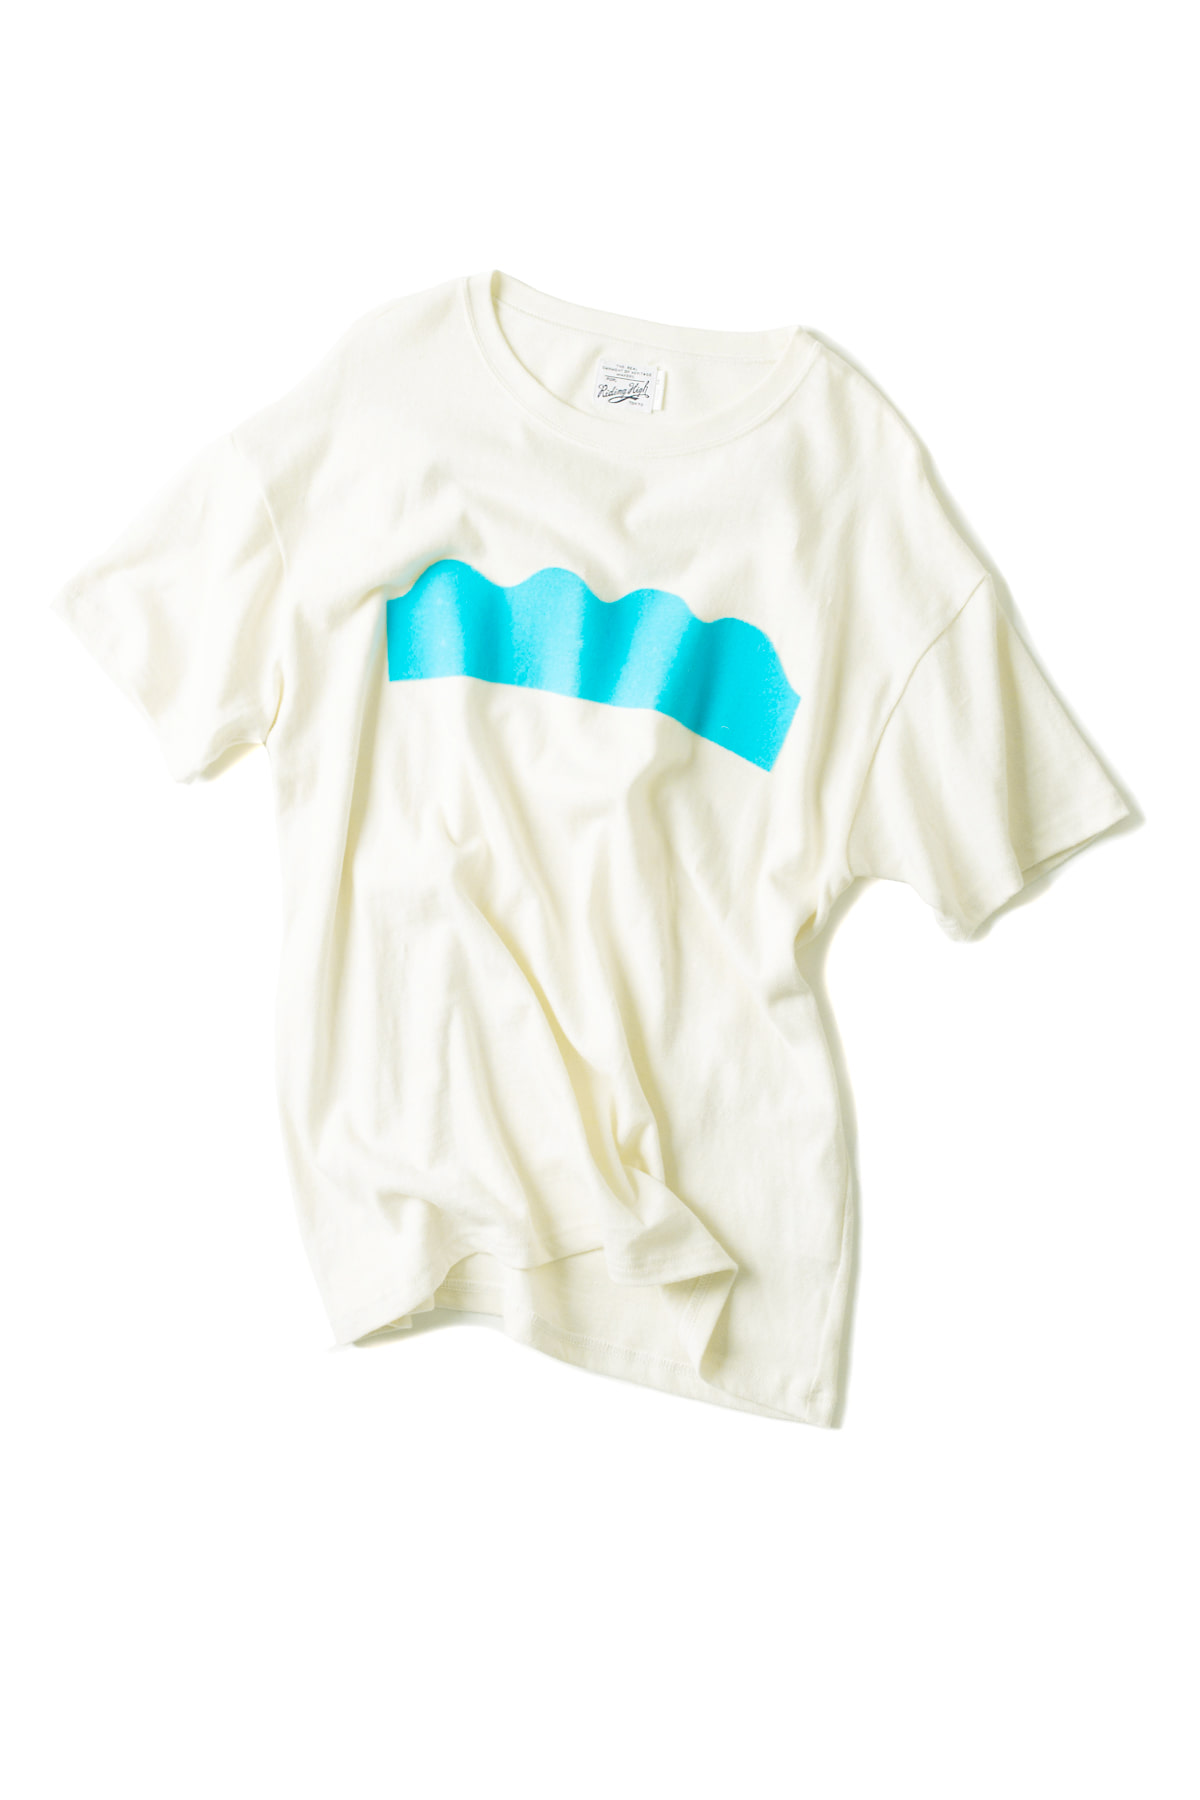 Riding High : Ruff Knit Flocky Tee (Sea)